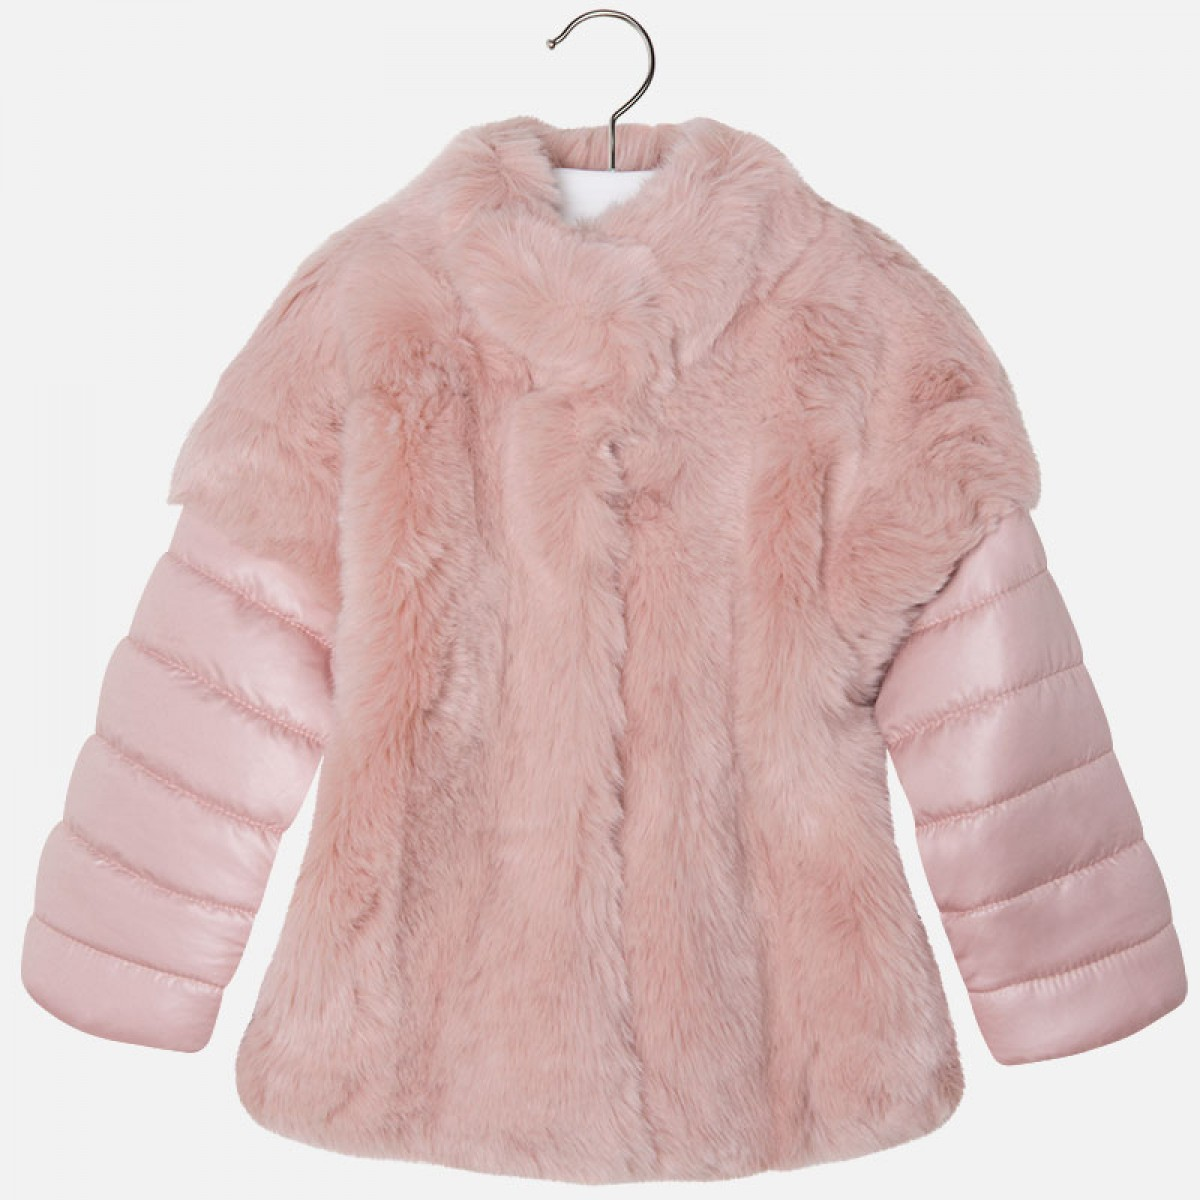 4512d304 Mayoral Pink Fur Coat with Removable Sleeves (4481)